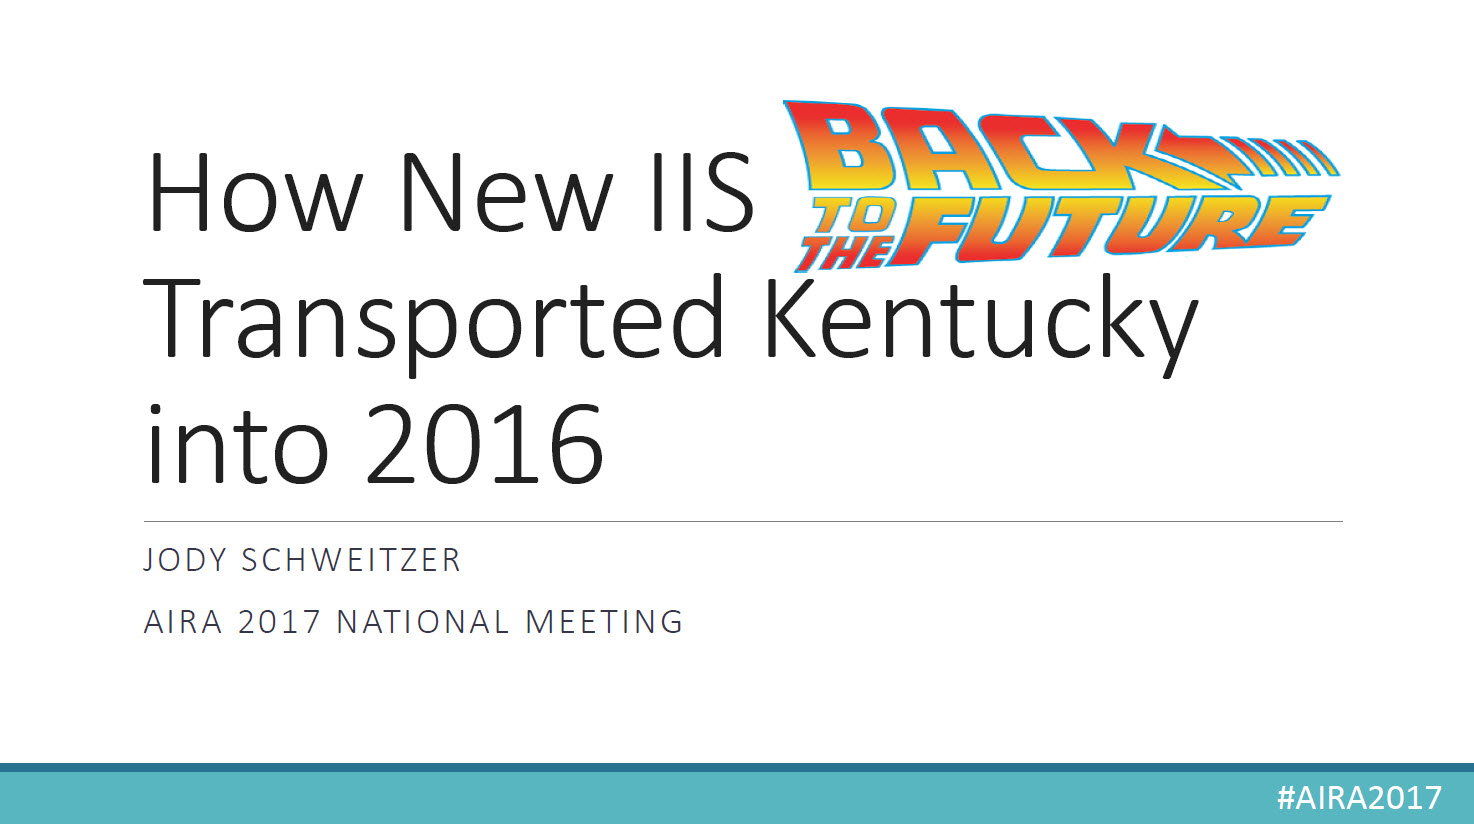 Back to the Future: How New IIS Transported Kentucky into 2016